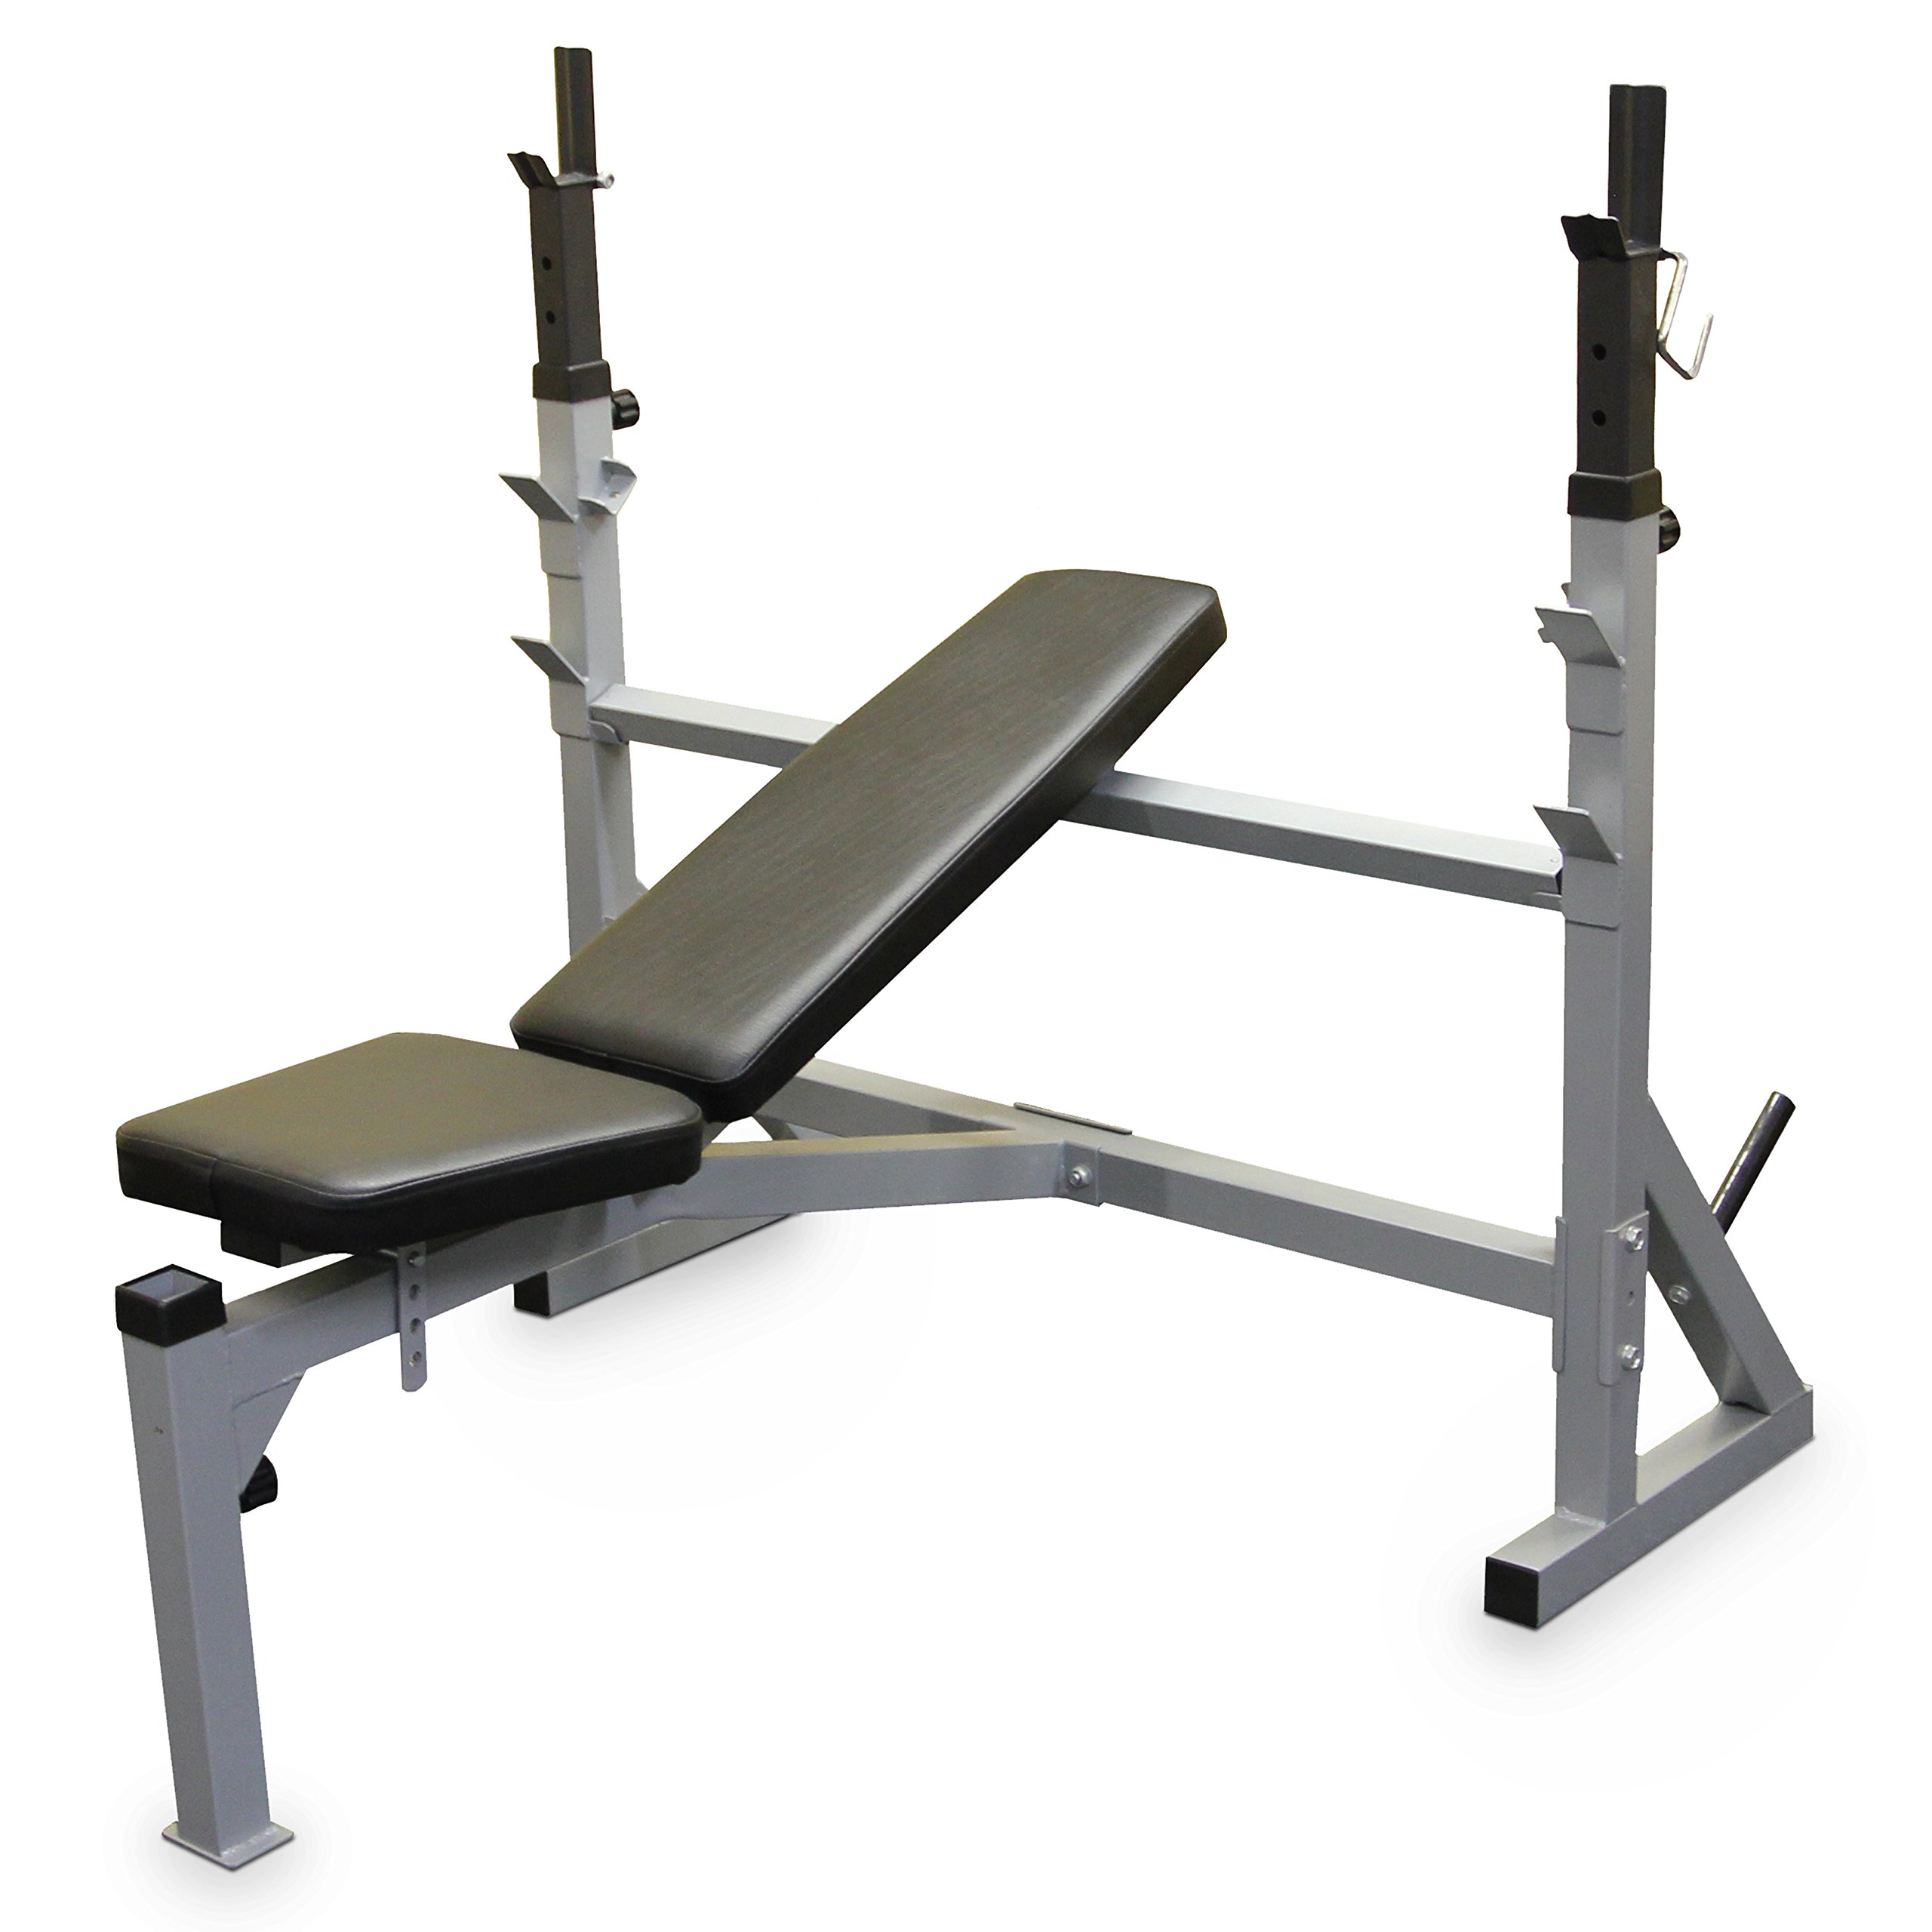 Valor Fitness Fid Olympic Bench by Valor Fitness